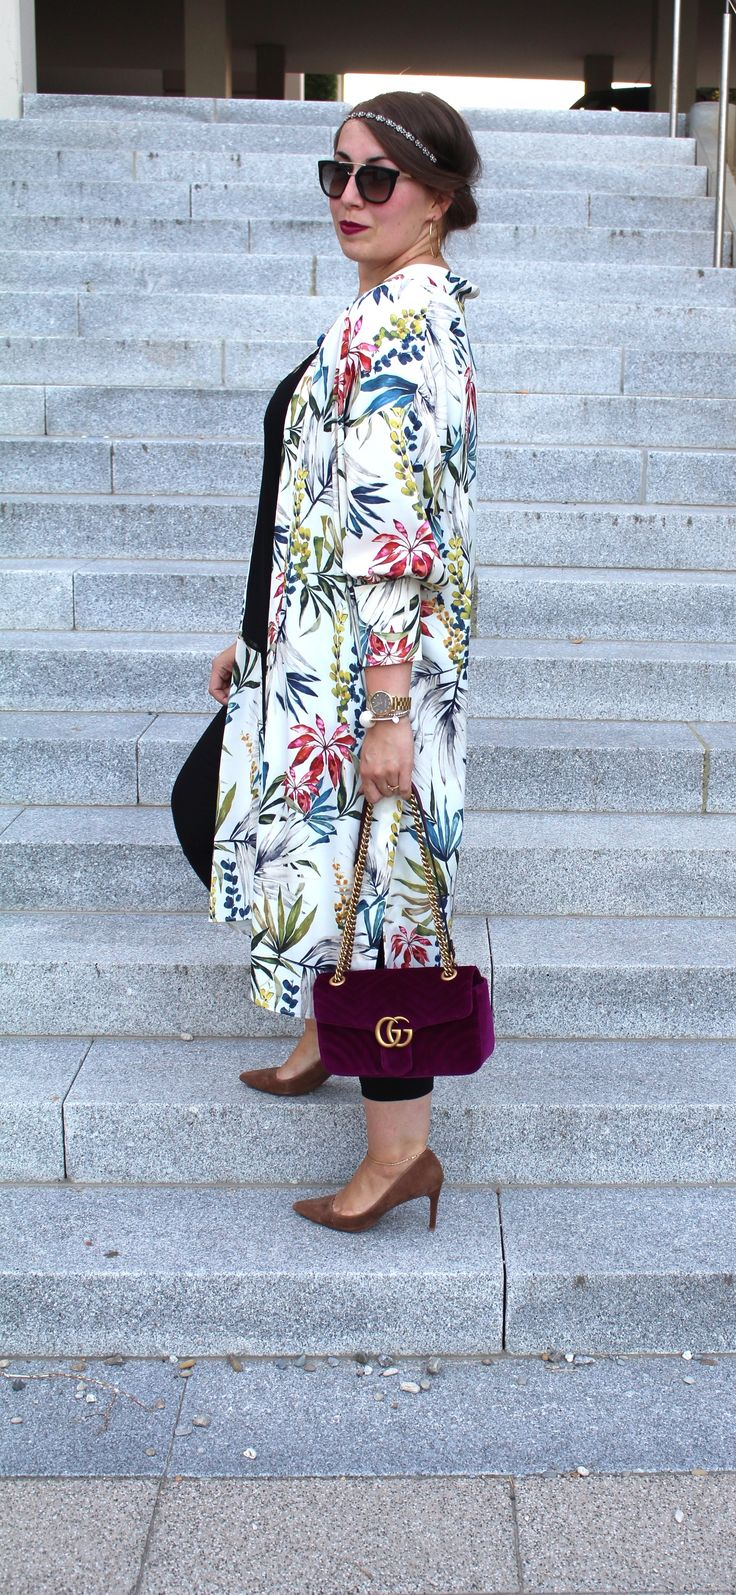 How to wear: Flower Kimono / Blumen Kimono / Gucci Marmont Velvet Bag - WWW.MISSSUZIELOVES.DE